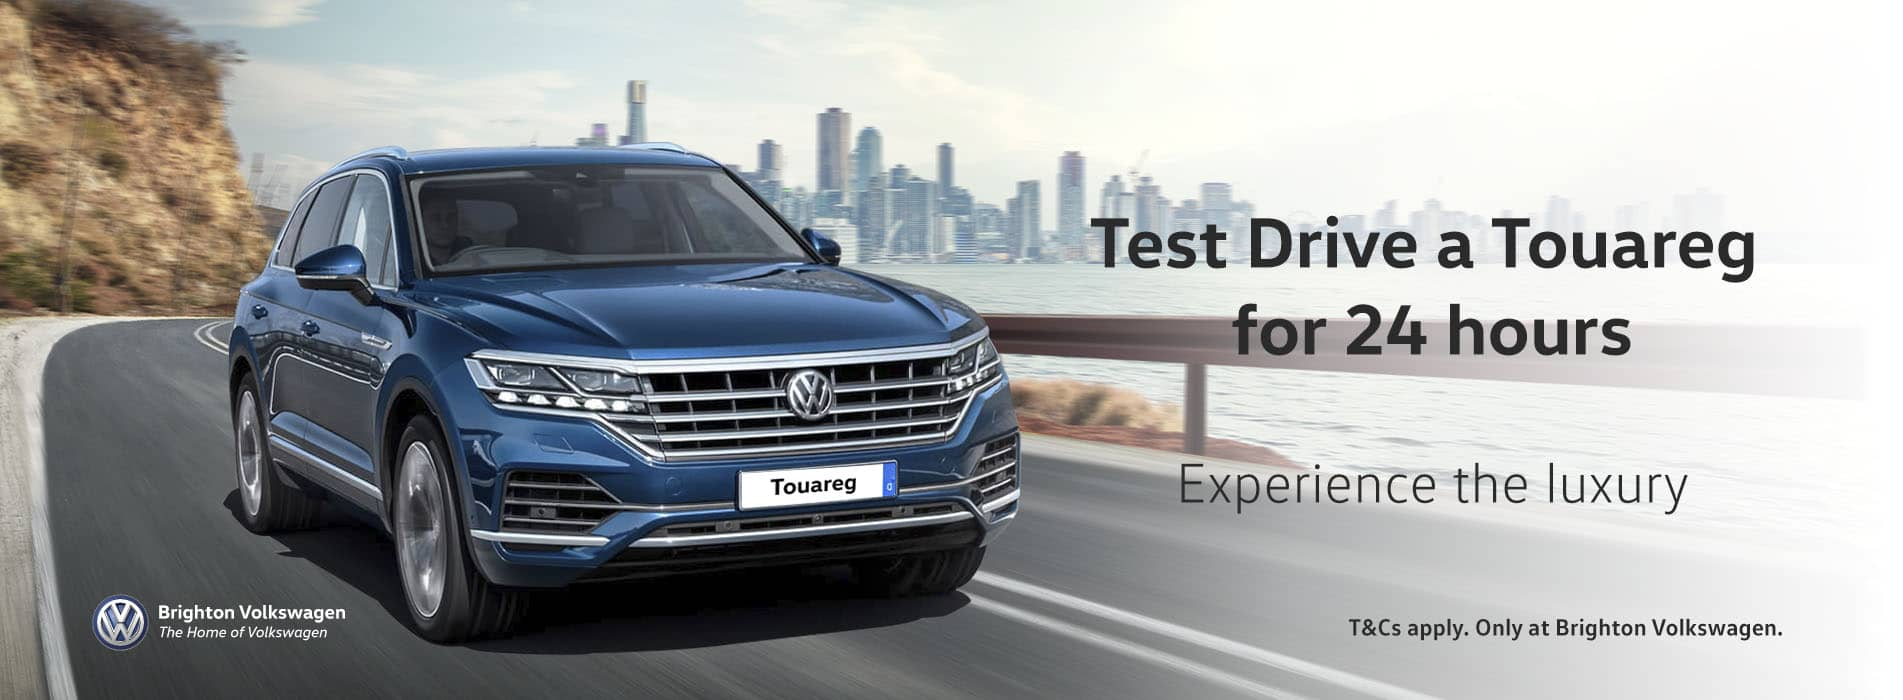 Test Drive a Touareg for 24 hours